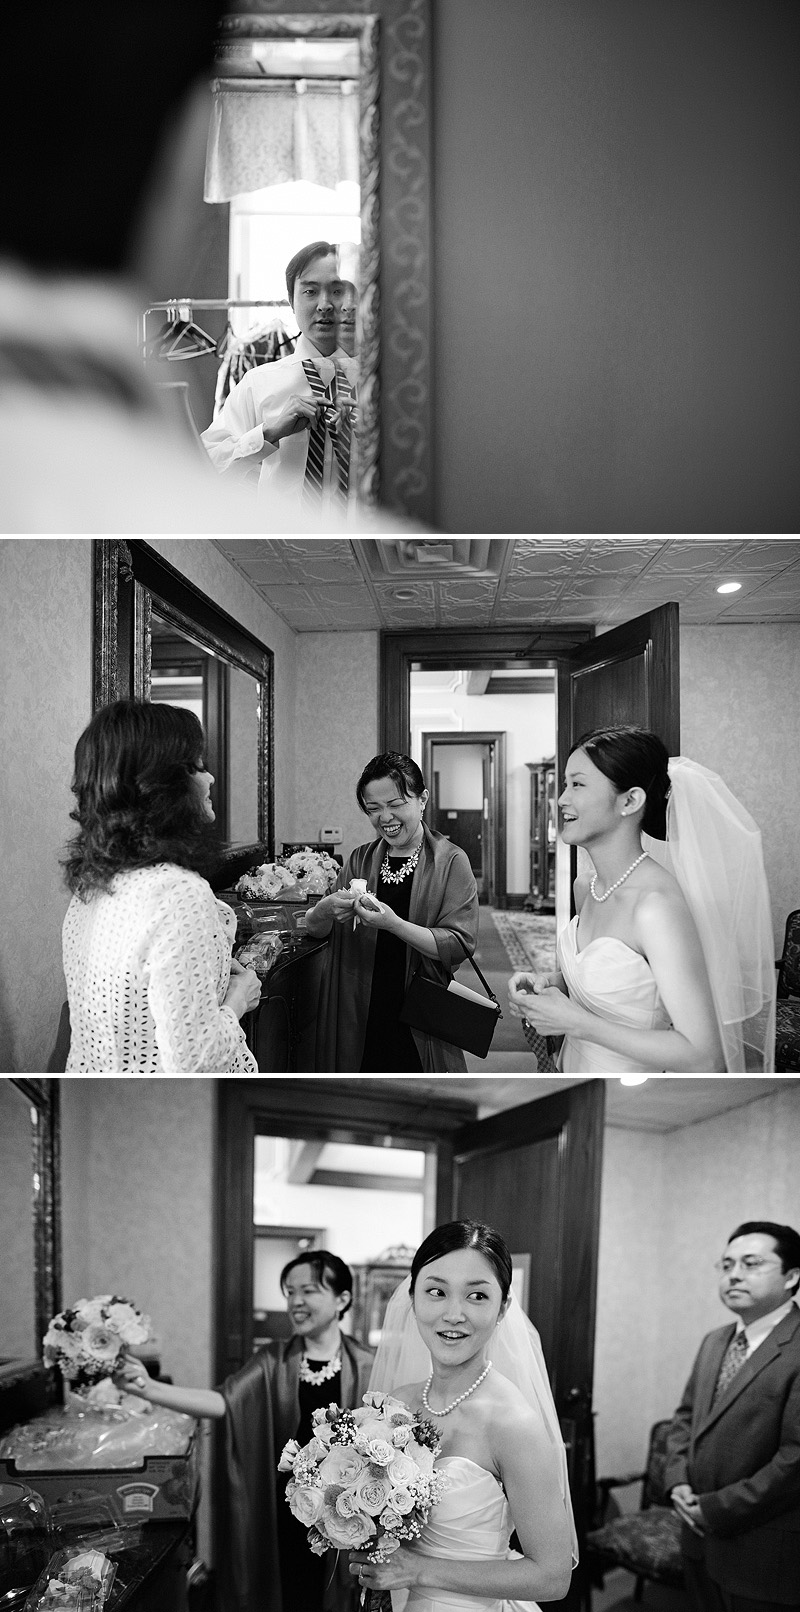 Laughter before a wedding.